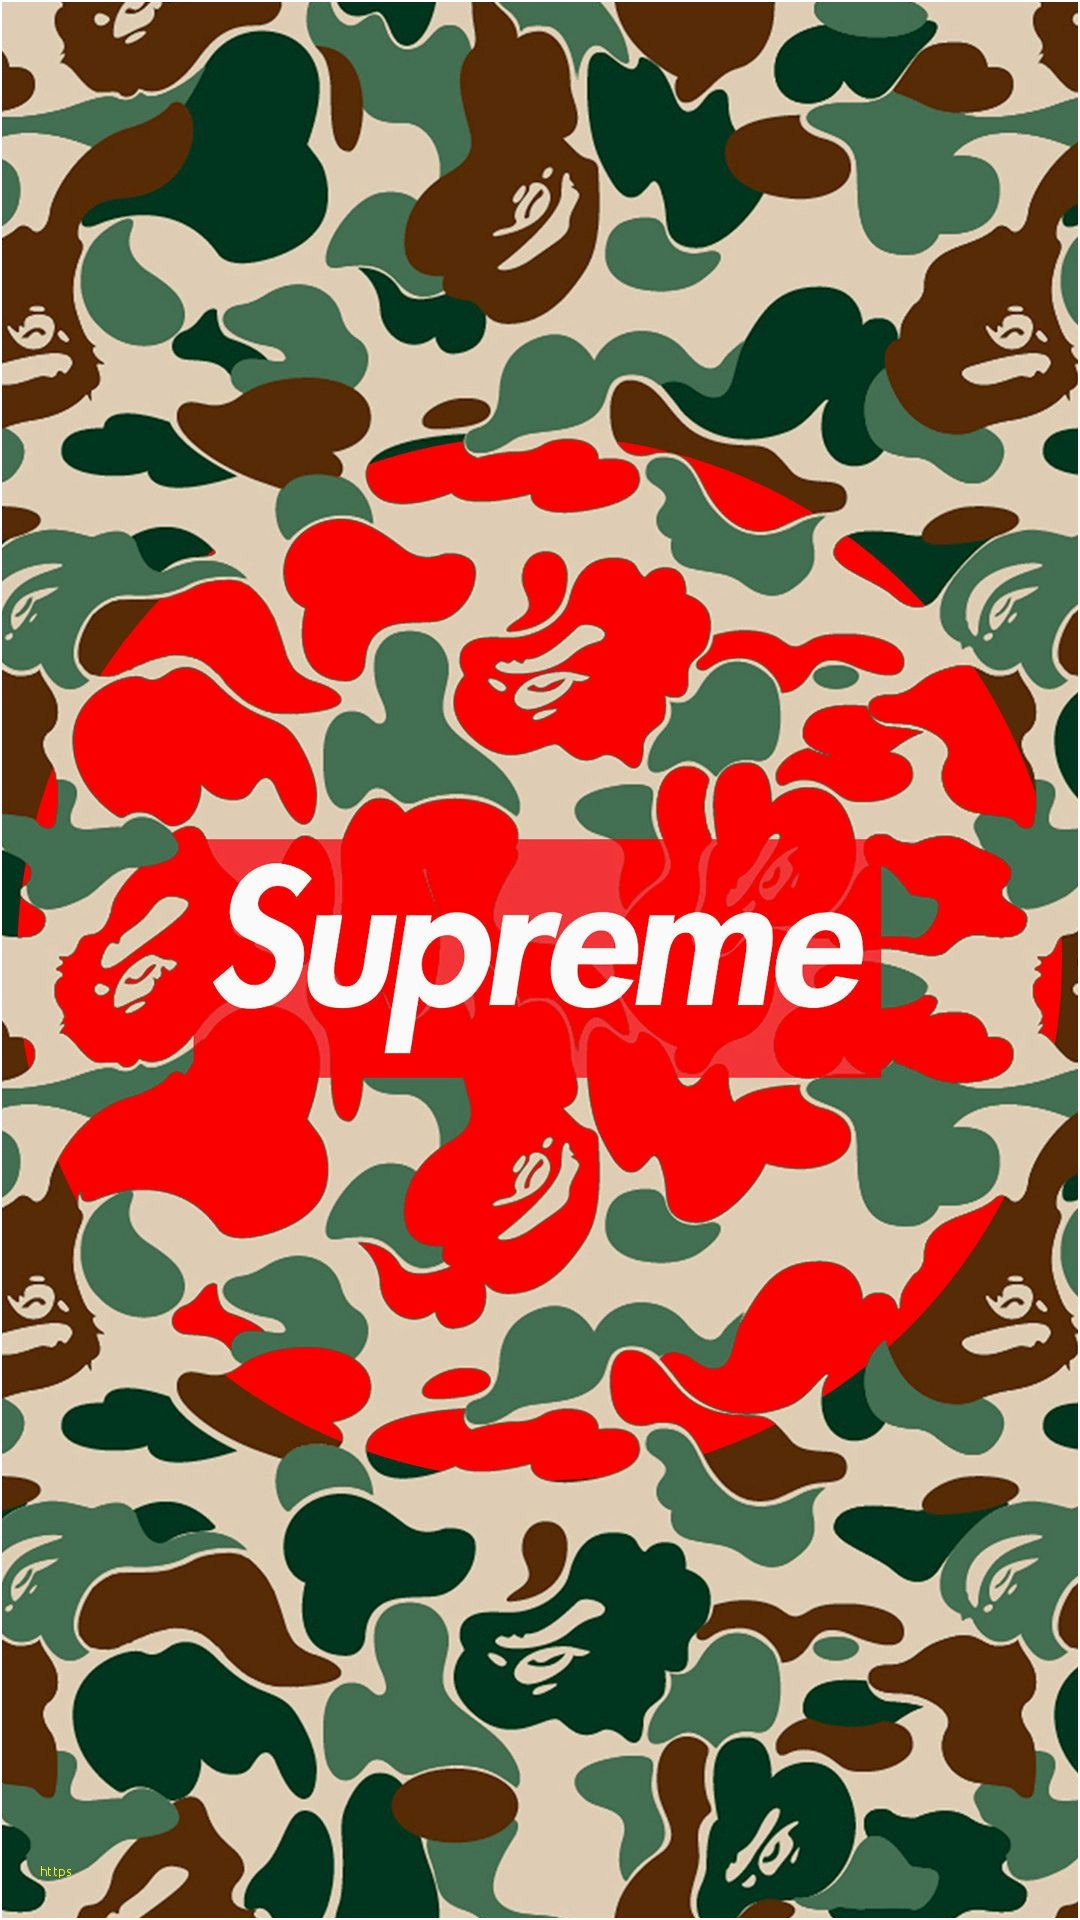 Supreme Wallpapers For Iphone - HD Wallpaper